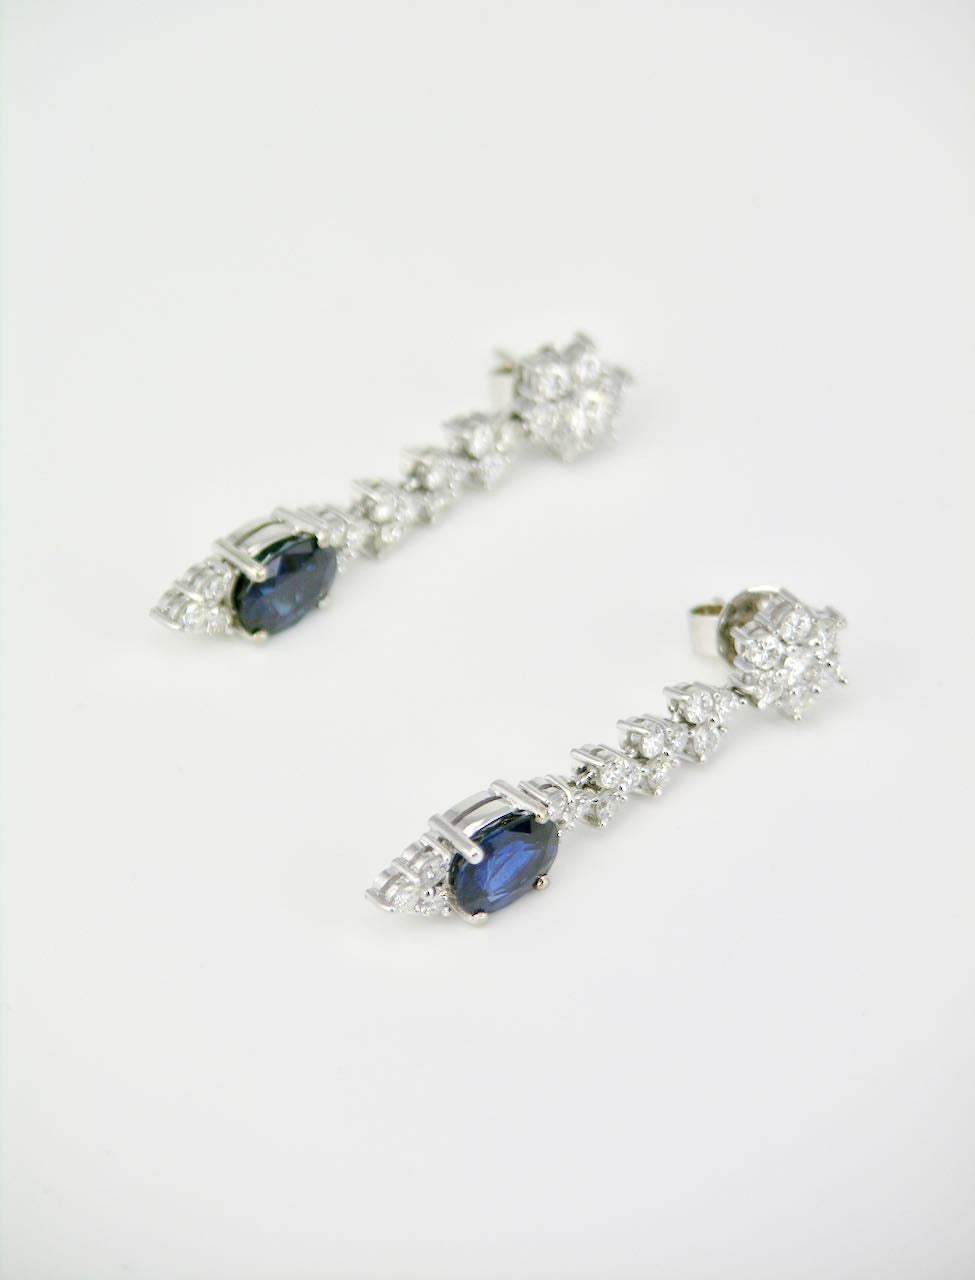 Vintage 18k White Gold Blue Sapphire Diamond Drop Earrings 1970s